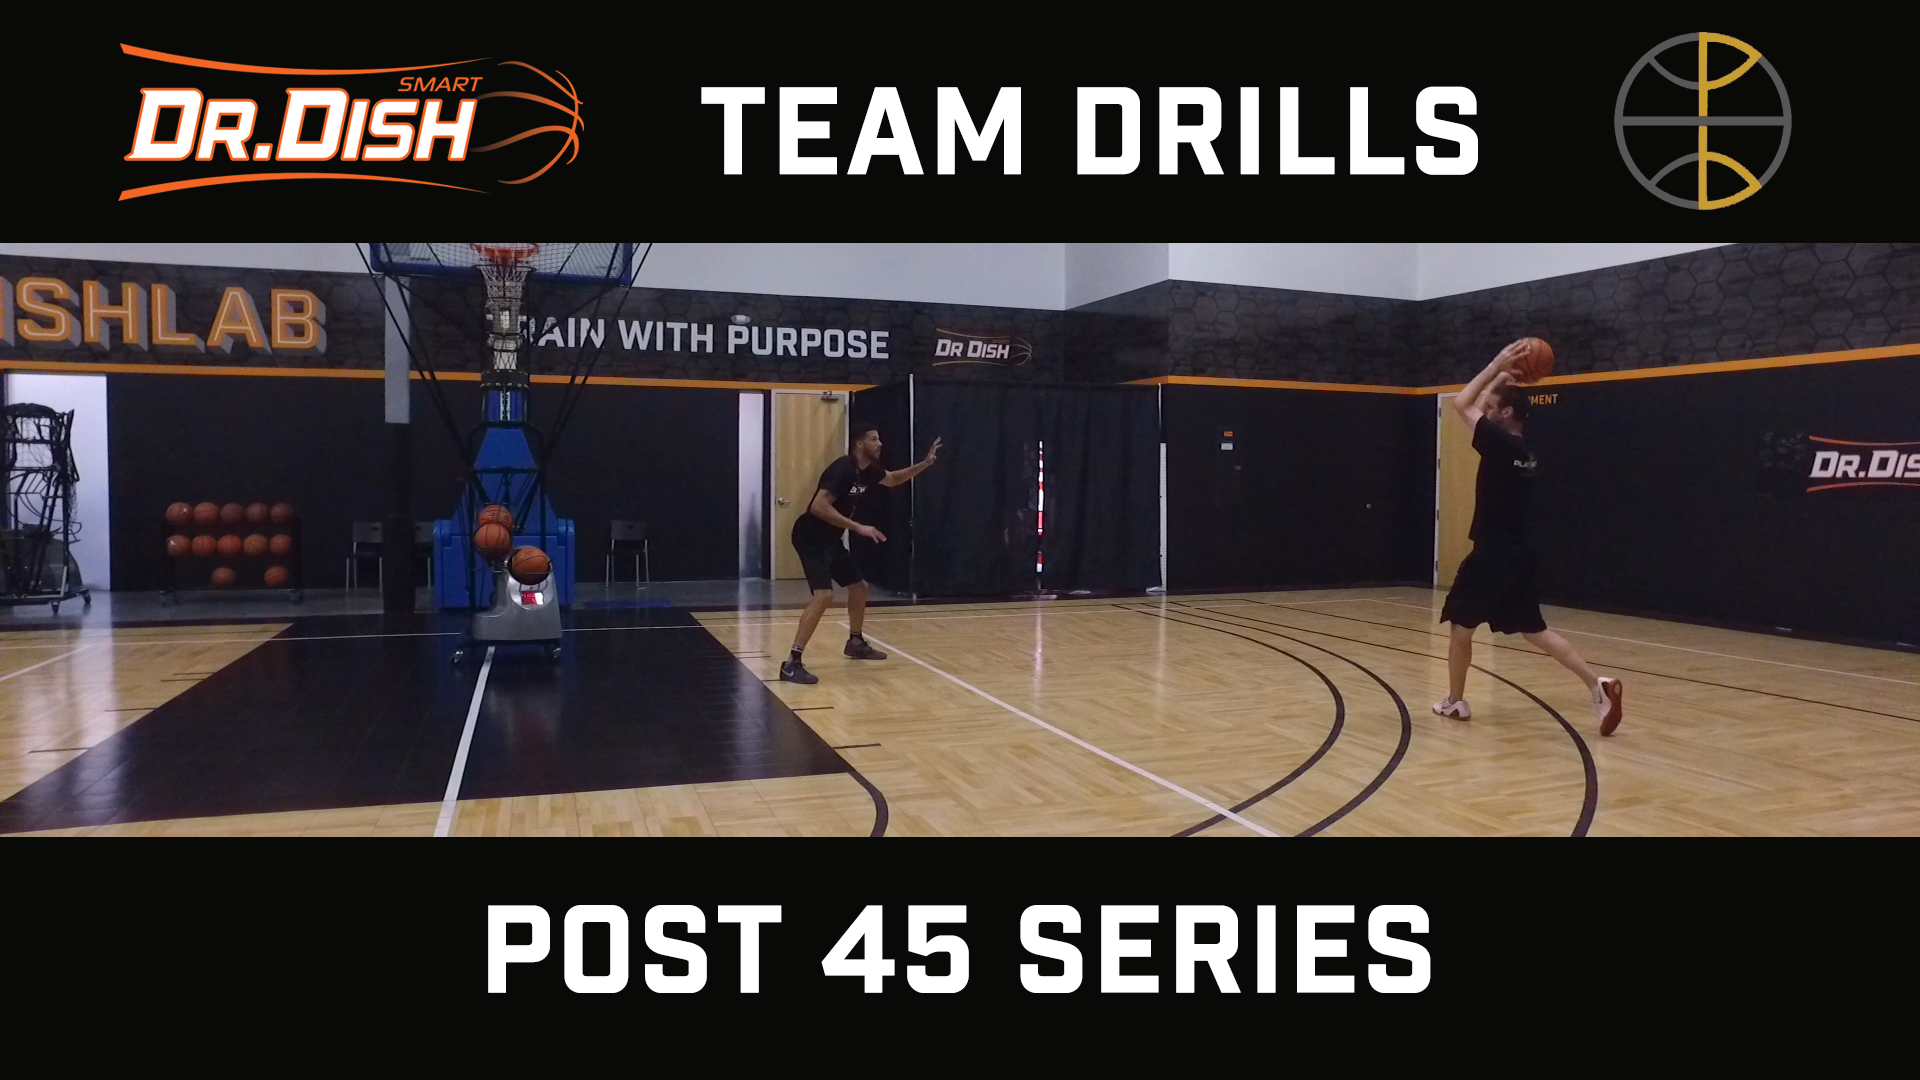 Basketball Drills: Post 45 Series with Positionless Basketball